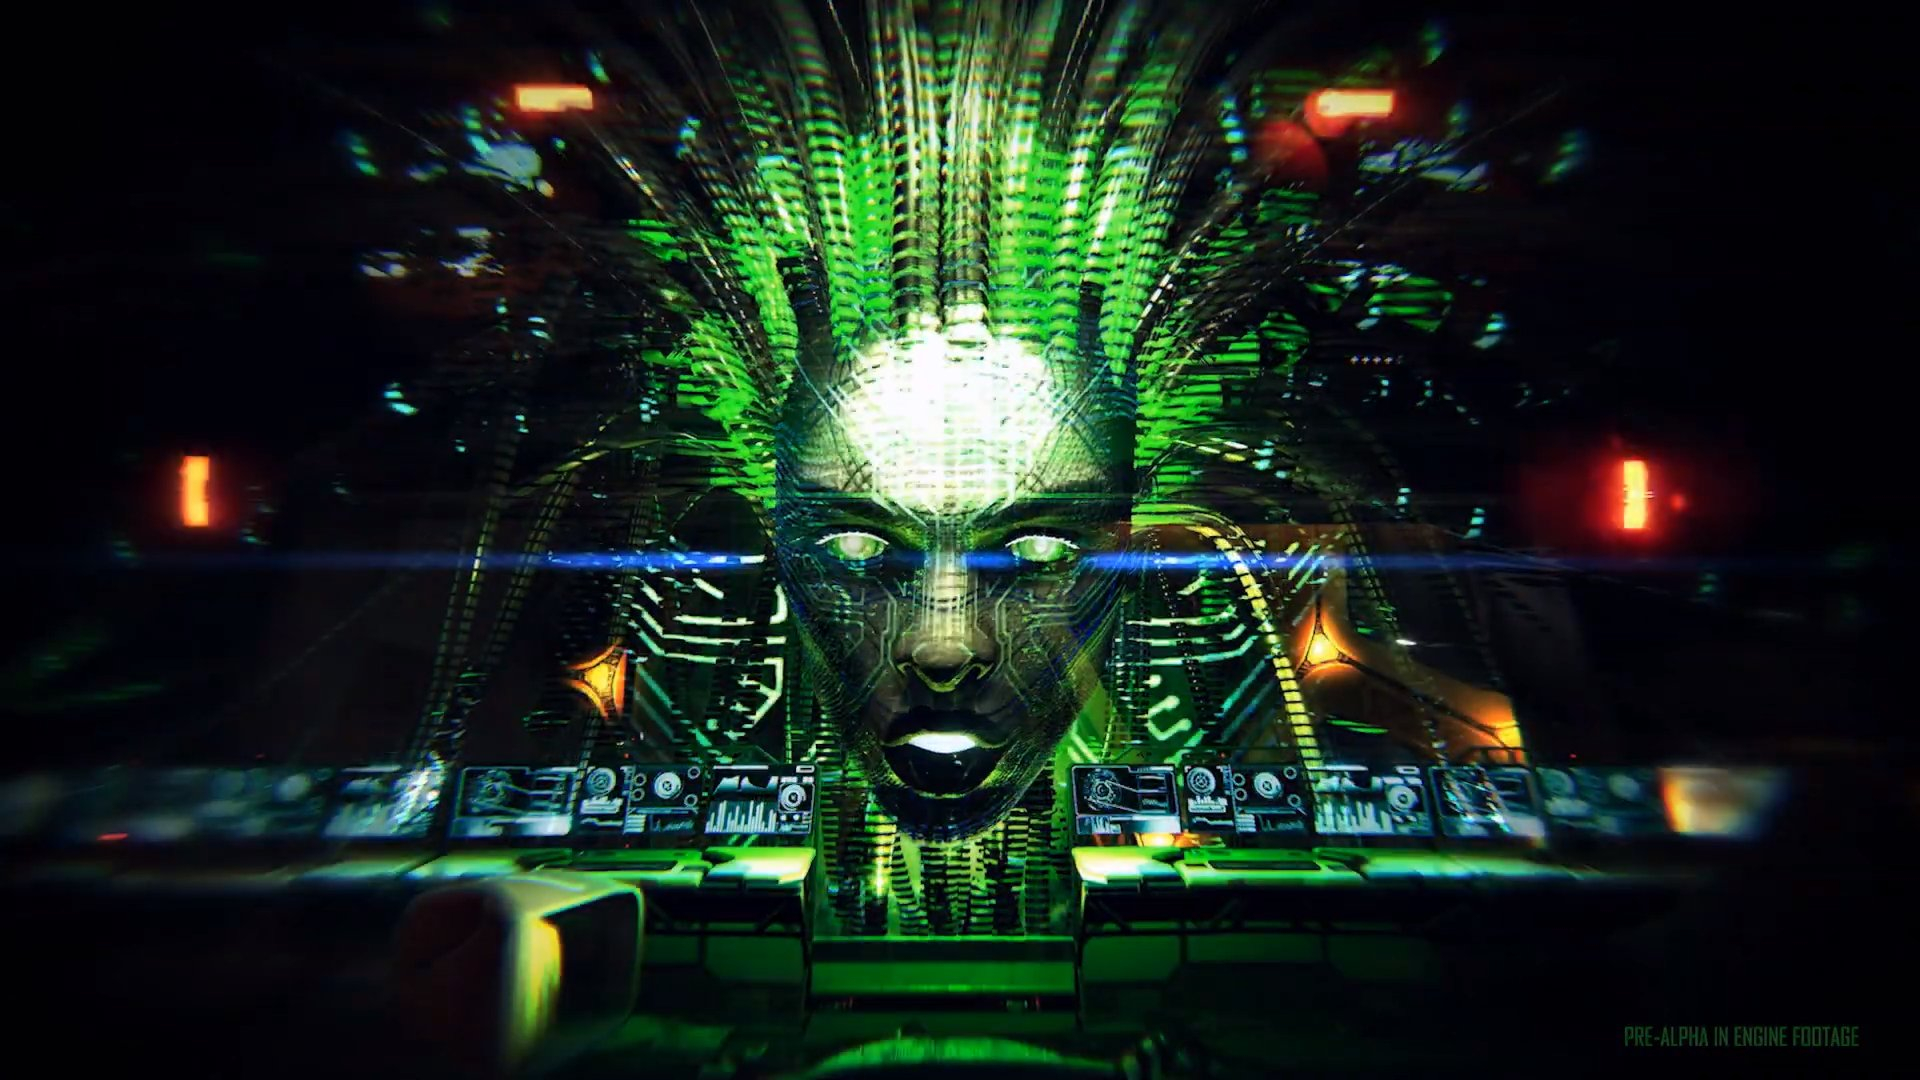 New System Shock 3 trailer emerges from GDC Header Image